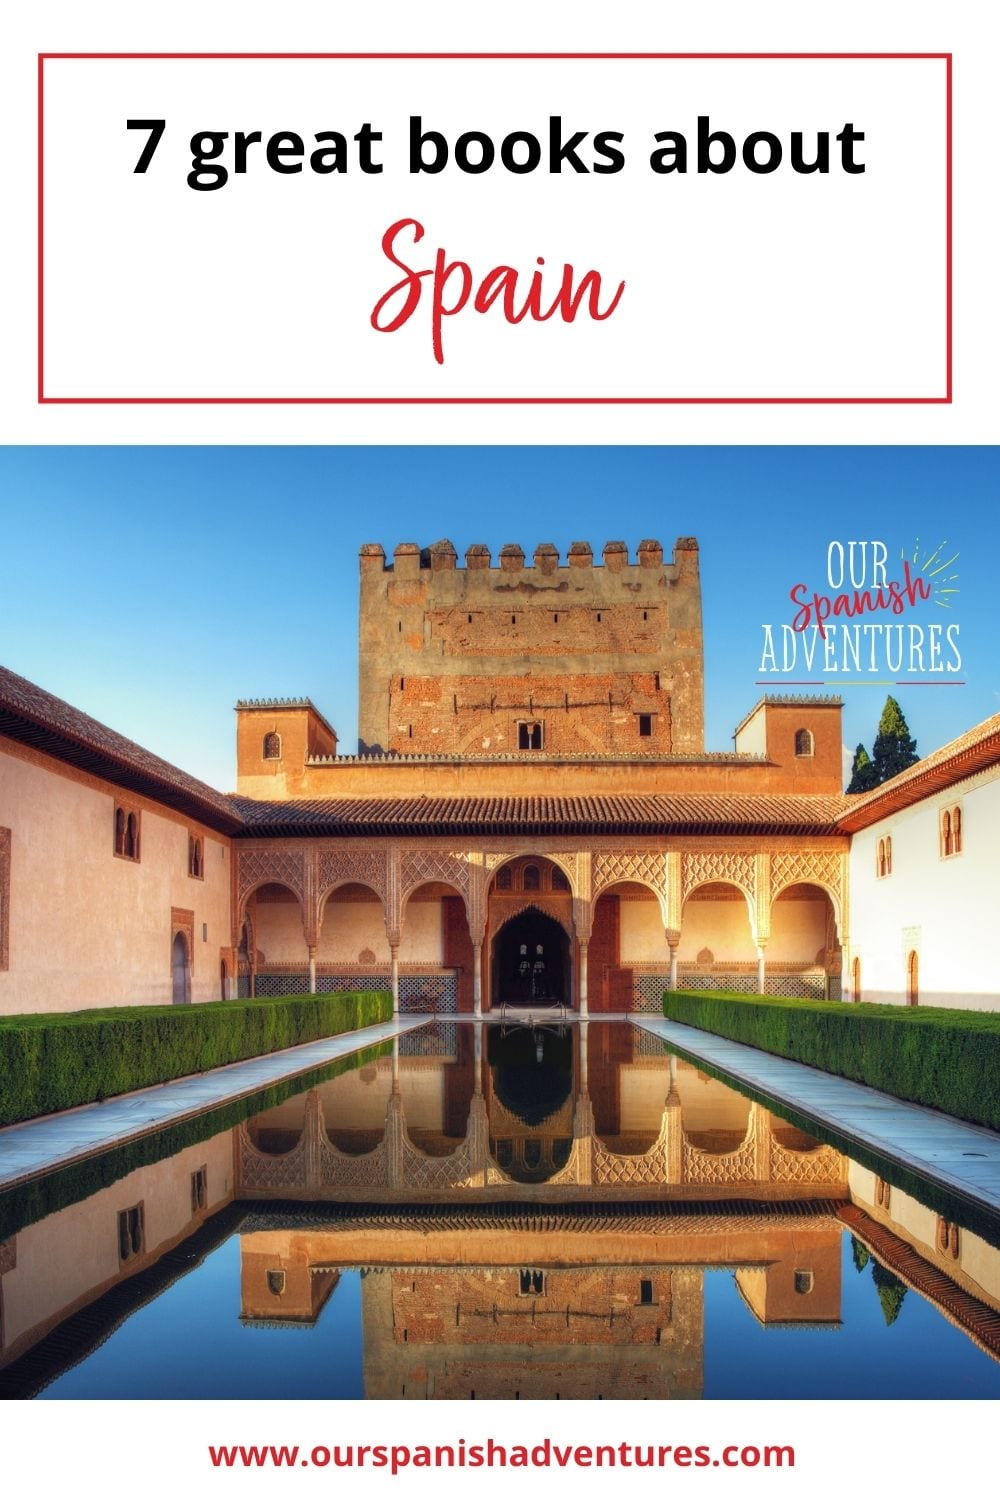 7 great books about Spain | Our Spanish Adventures